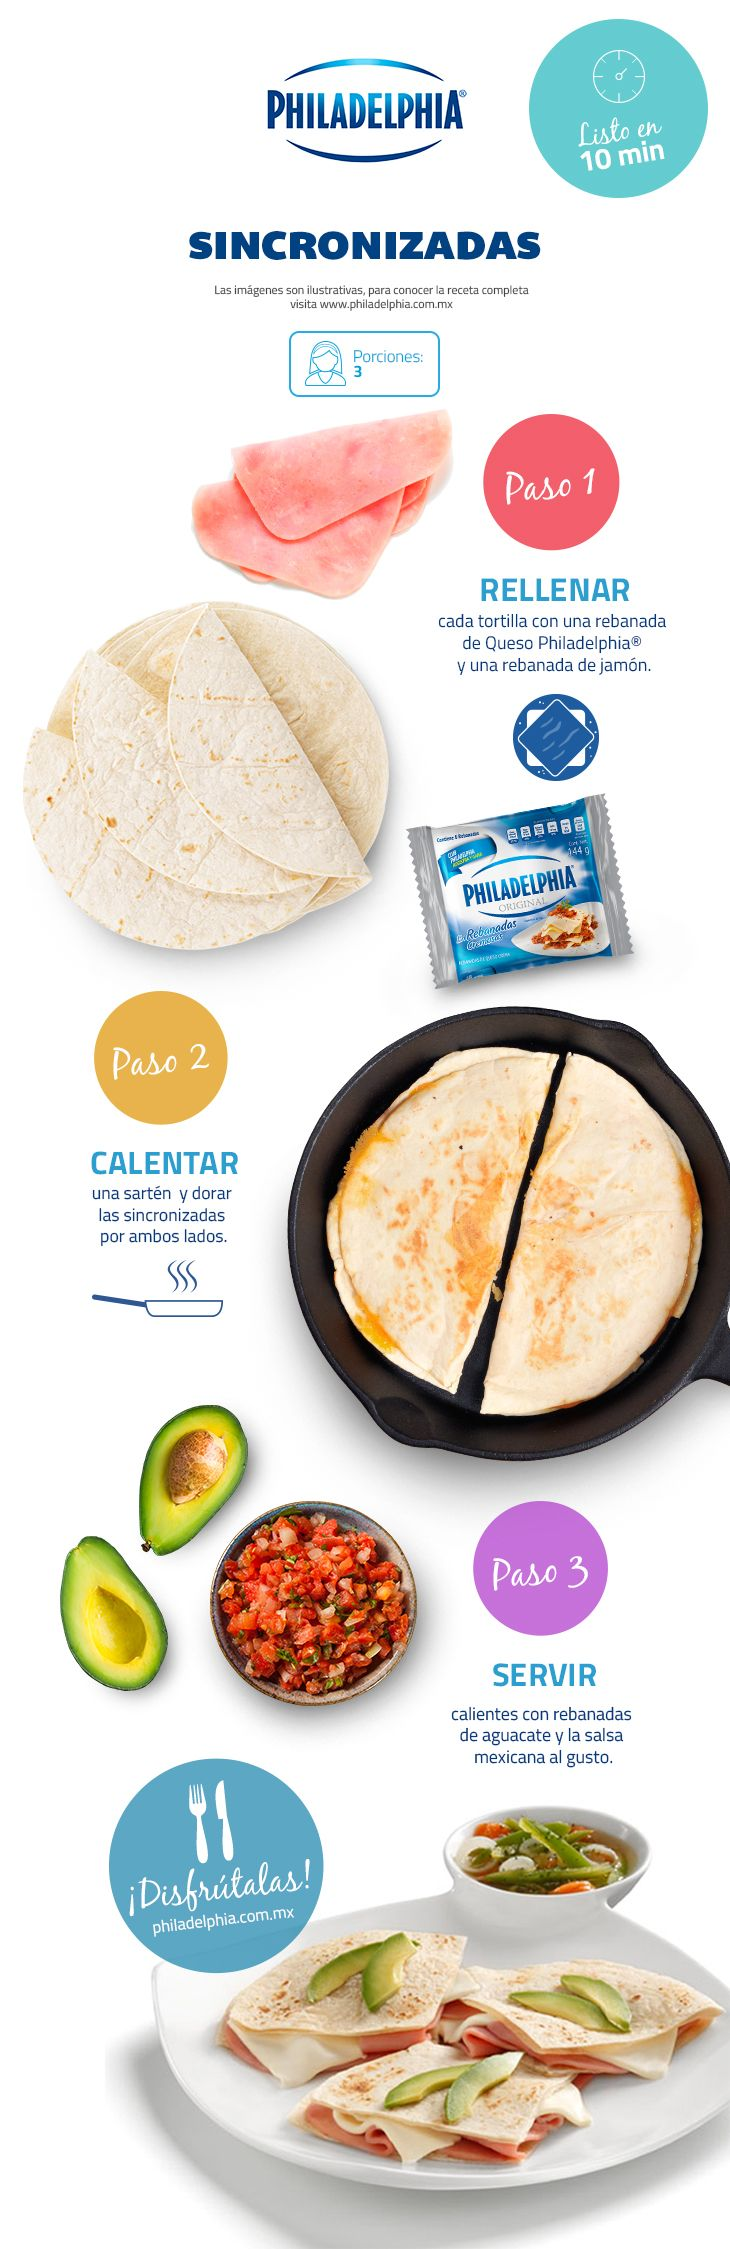 Deliciosas Sincronizadas con Queso Philadelphia®.